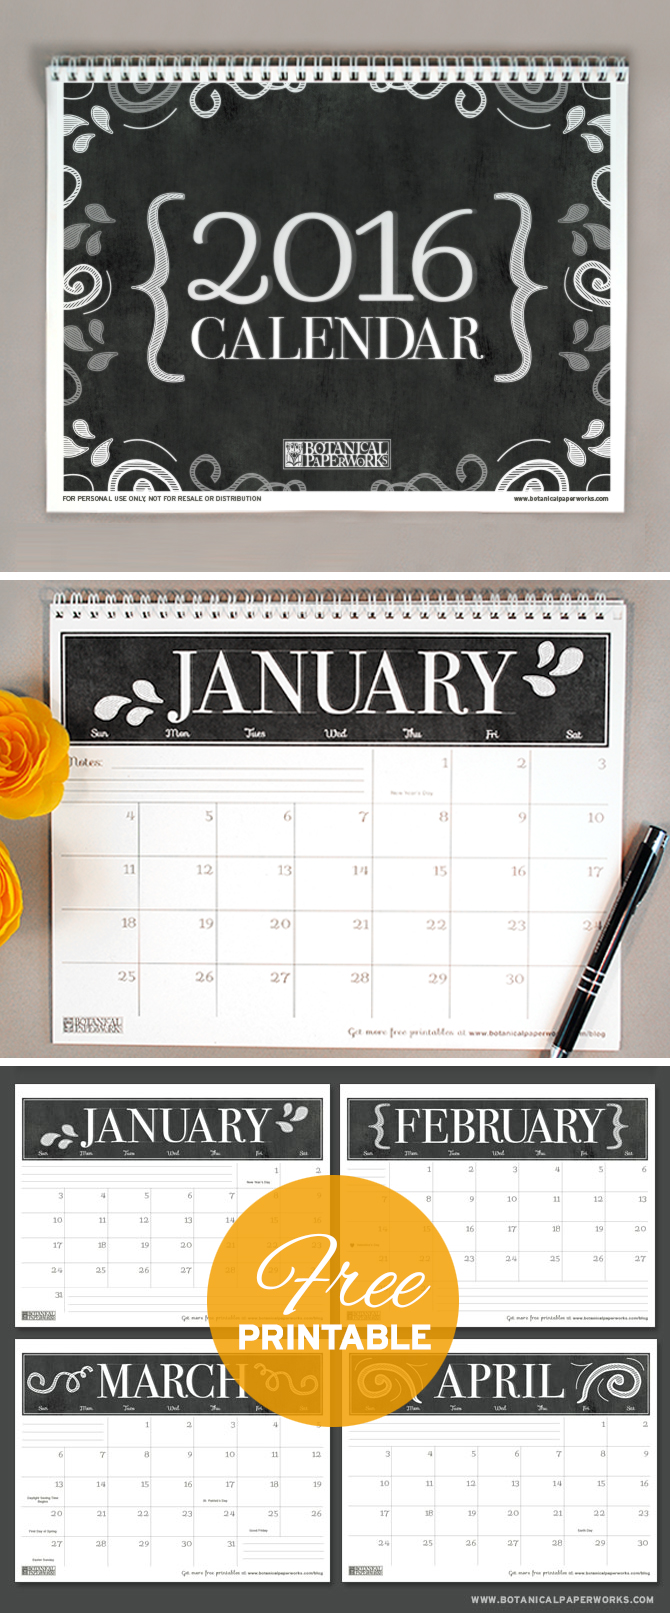 With a black and white color scheme, this 2016 #Chalkboard #Calendar is perfect for people who love simple and stylish #designs. Download your #freeprintable now!